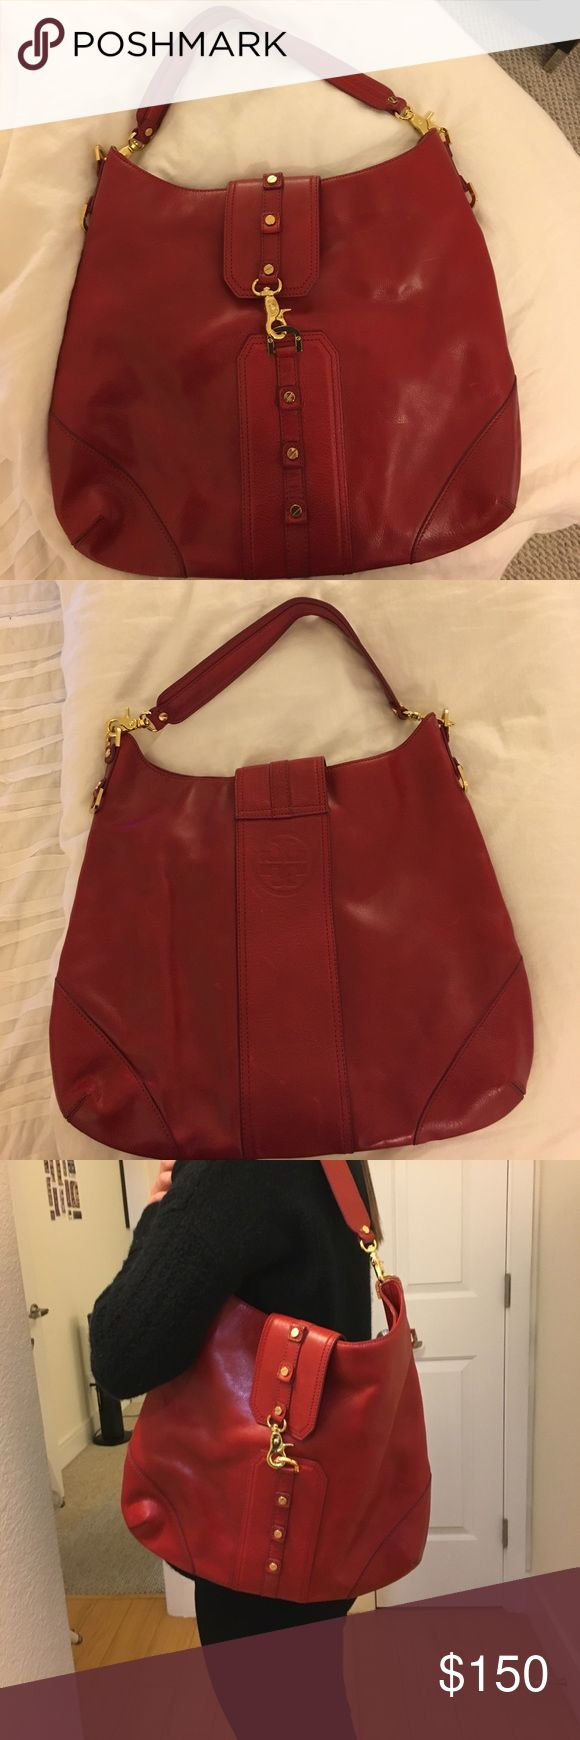 Tory Burch red hobo shoulder bag Red Tory Burch Hobo shoulder bag. A great pop of color to accent any outfit. Tory Burch Bags Shoulder Bags